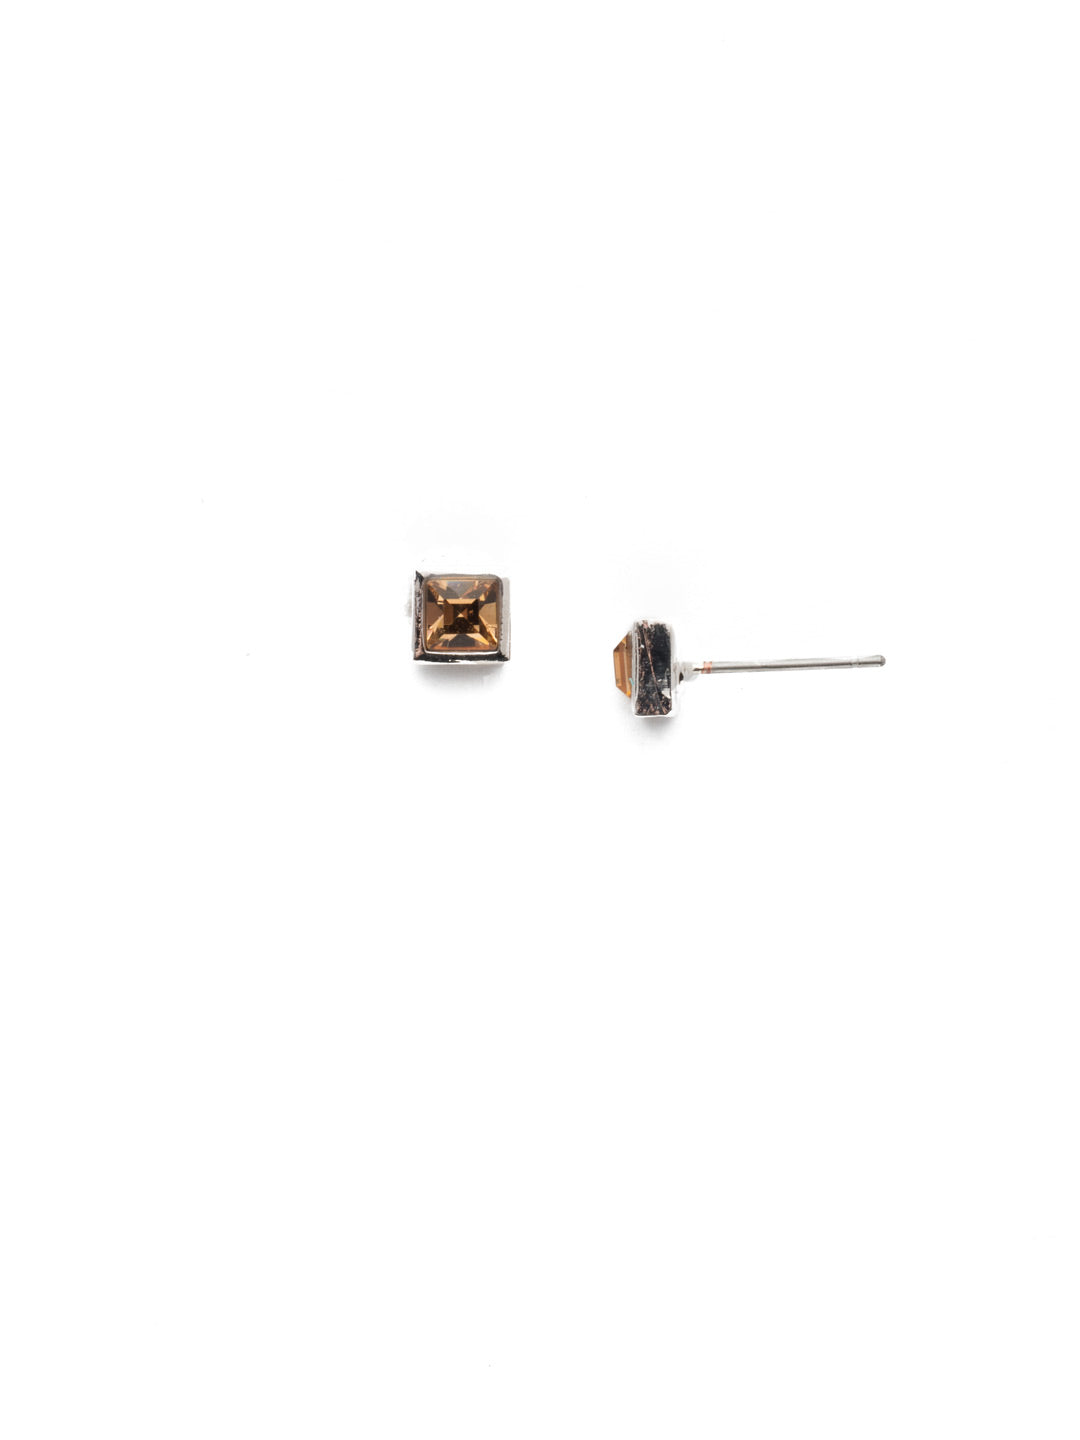 Square Stuff Stud Earrings - ECM53RHNTB